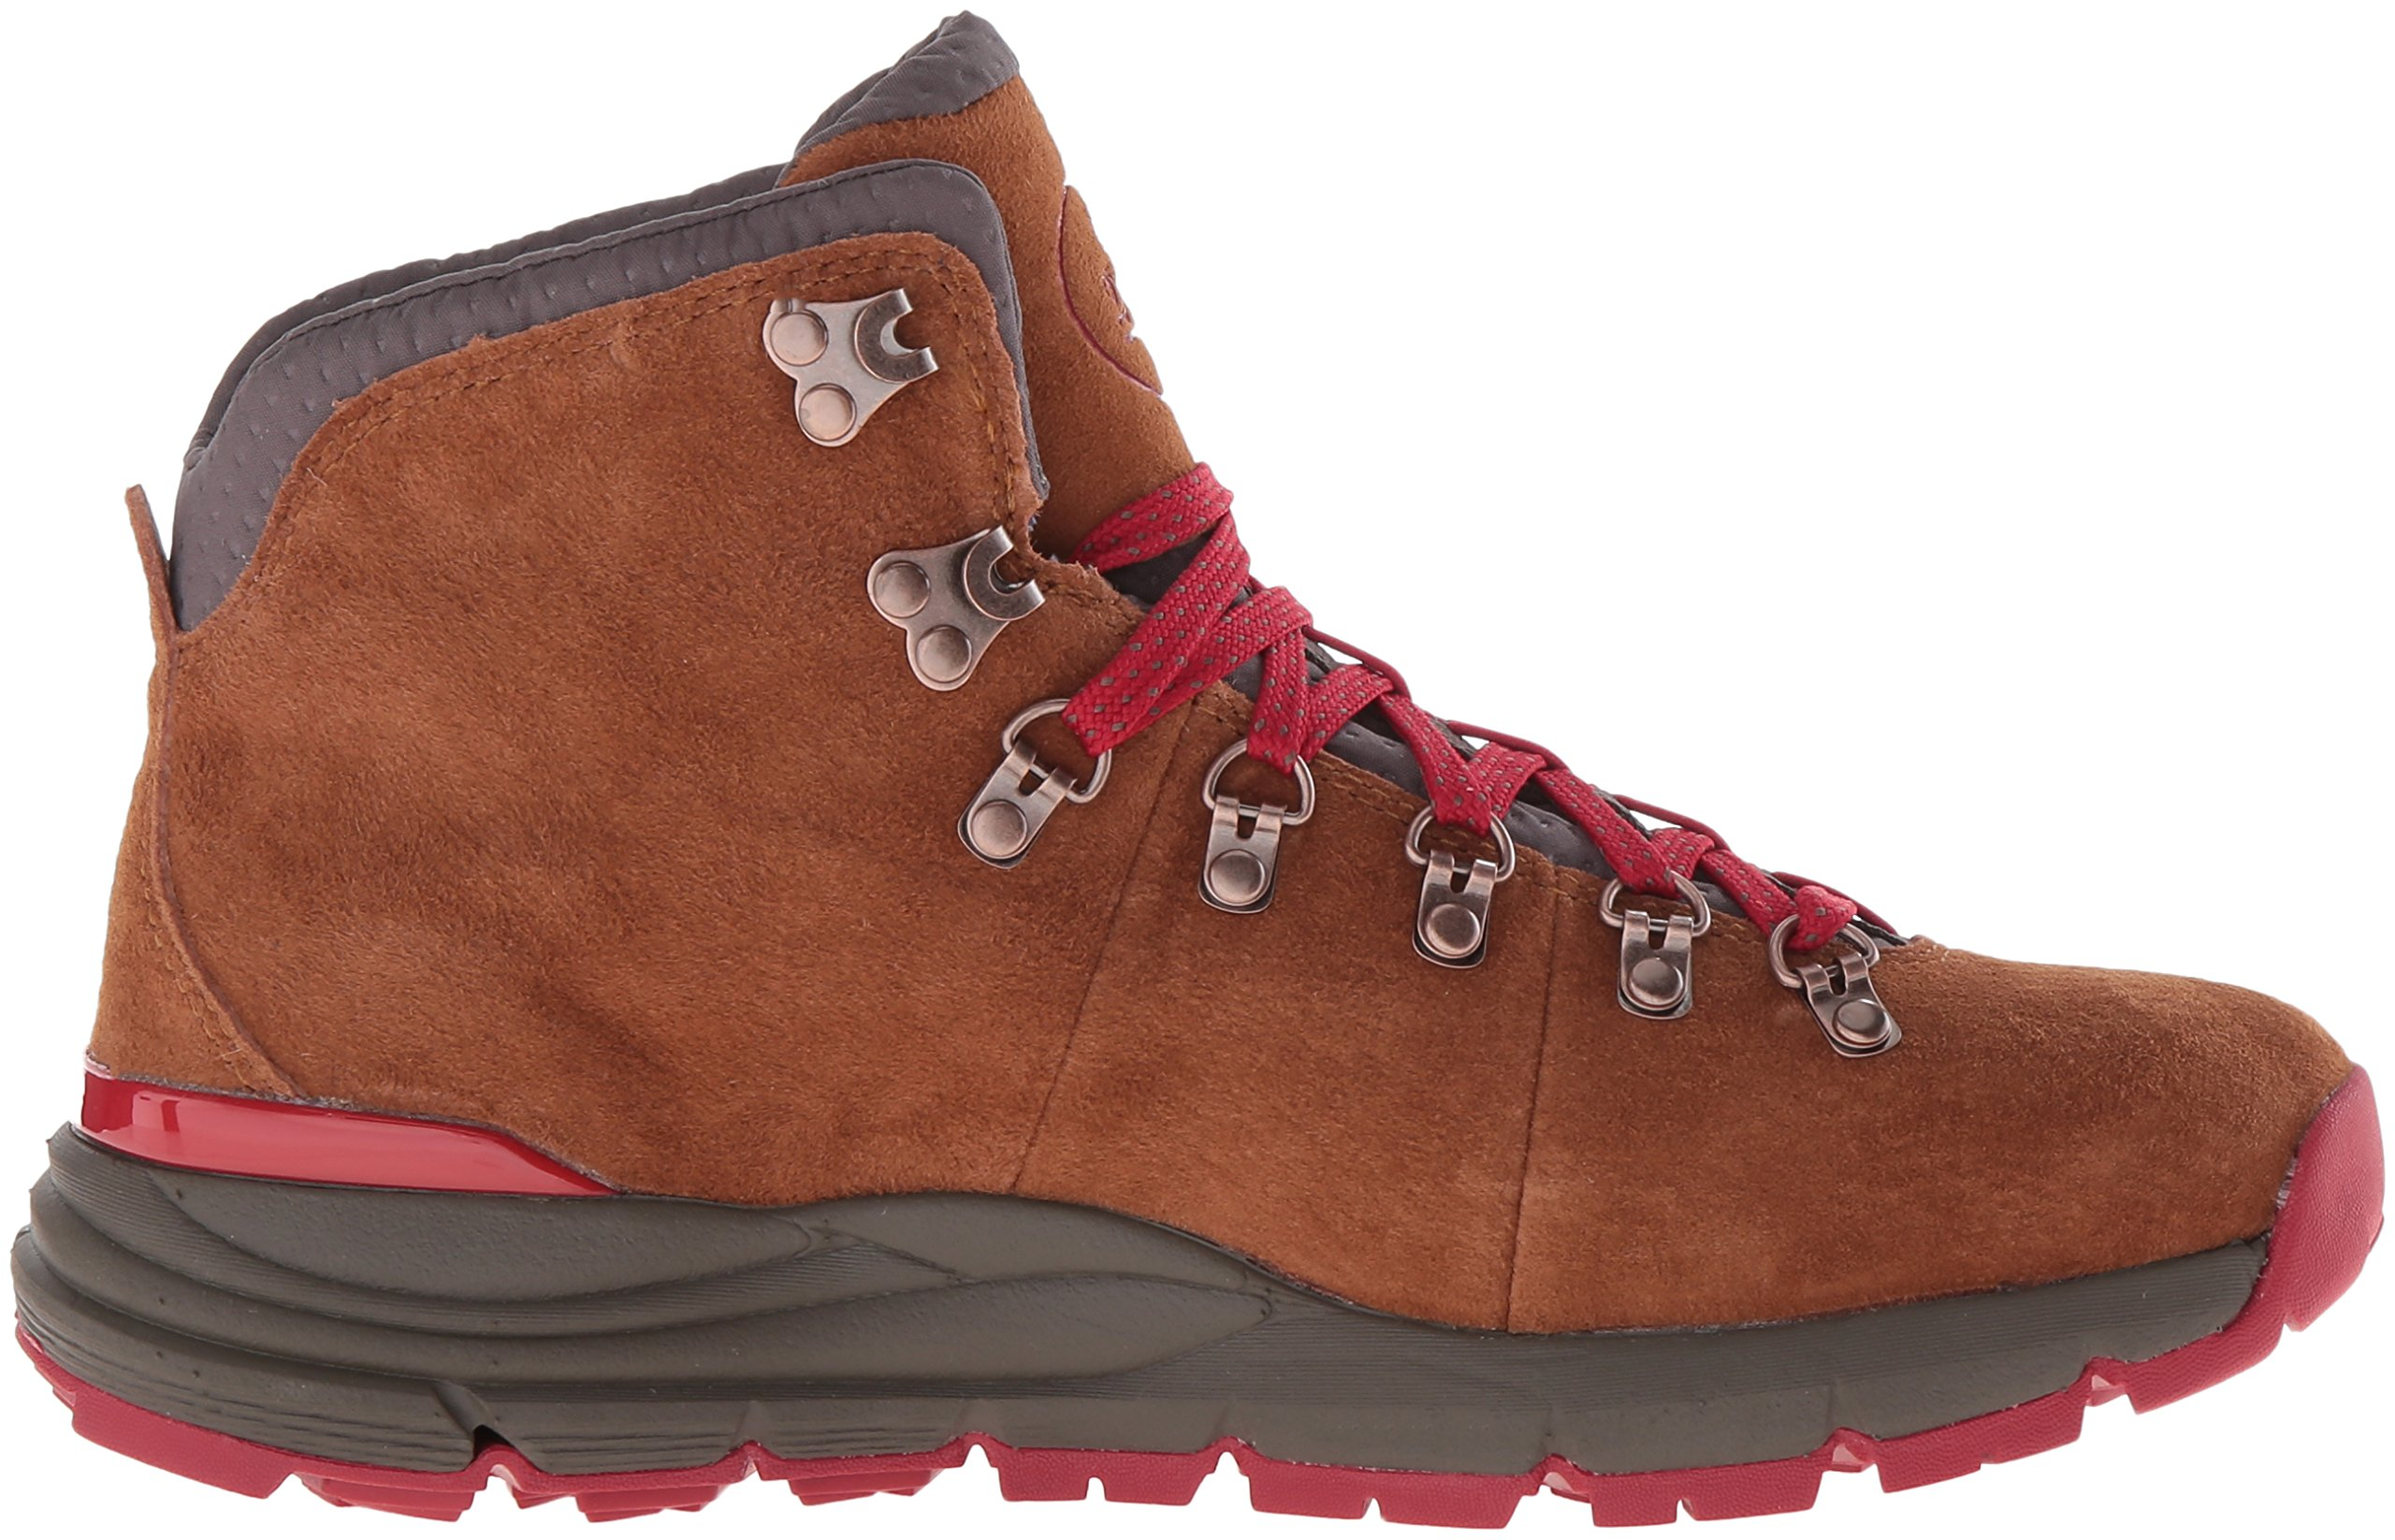 Danner Women's Mountain 600 4.5'' Hiking Boot, Brown/Red, 8.5 M US by Danner (Image #7)